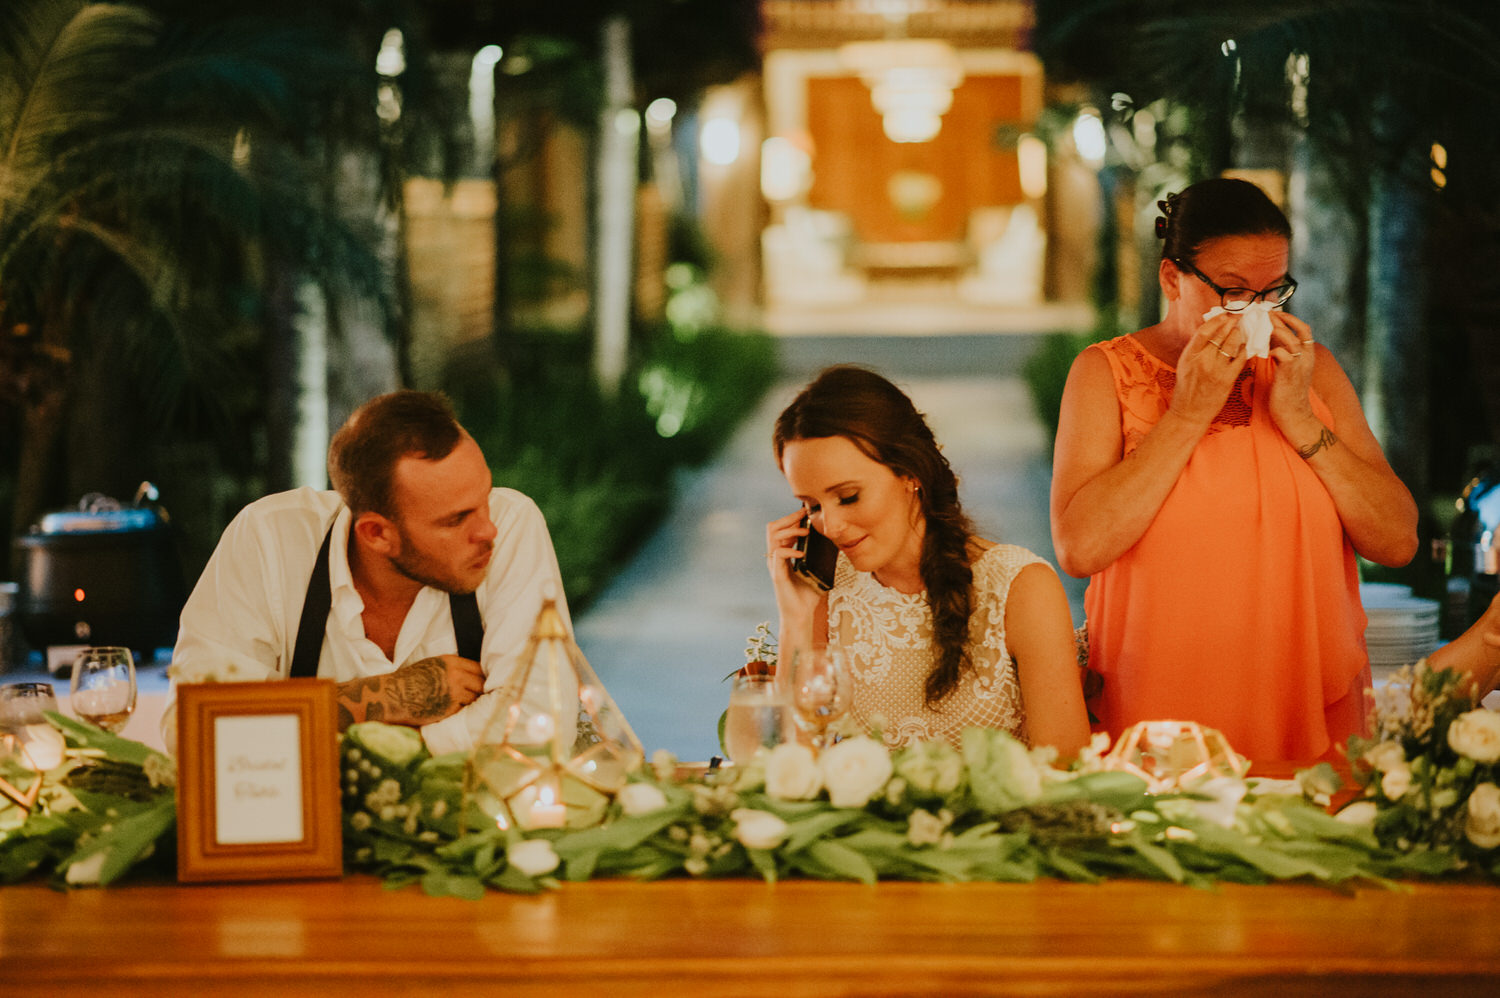 bali wedding destination - the ungasan wedding - bali wedding photographer - diktatphotography - aimee + blake wedding - 121